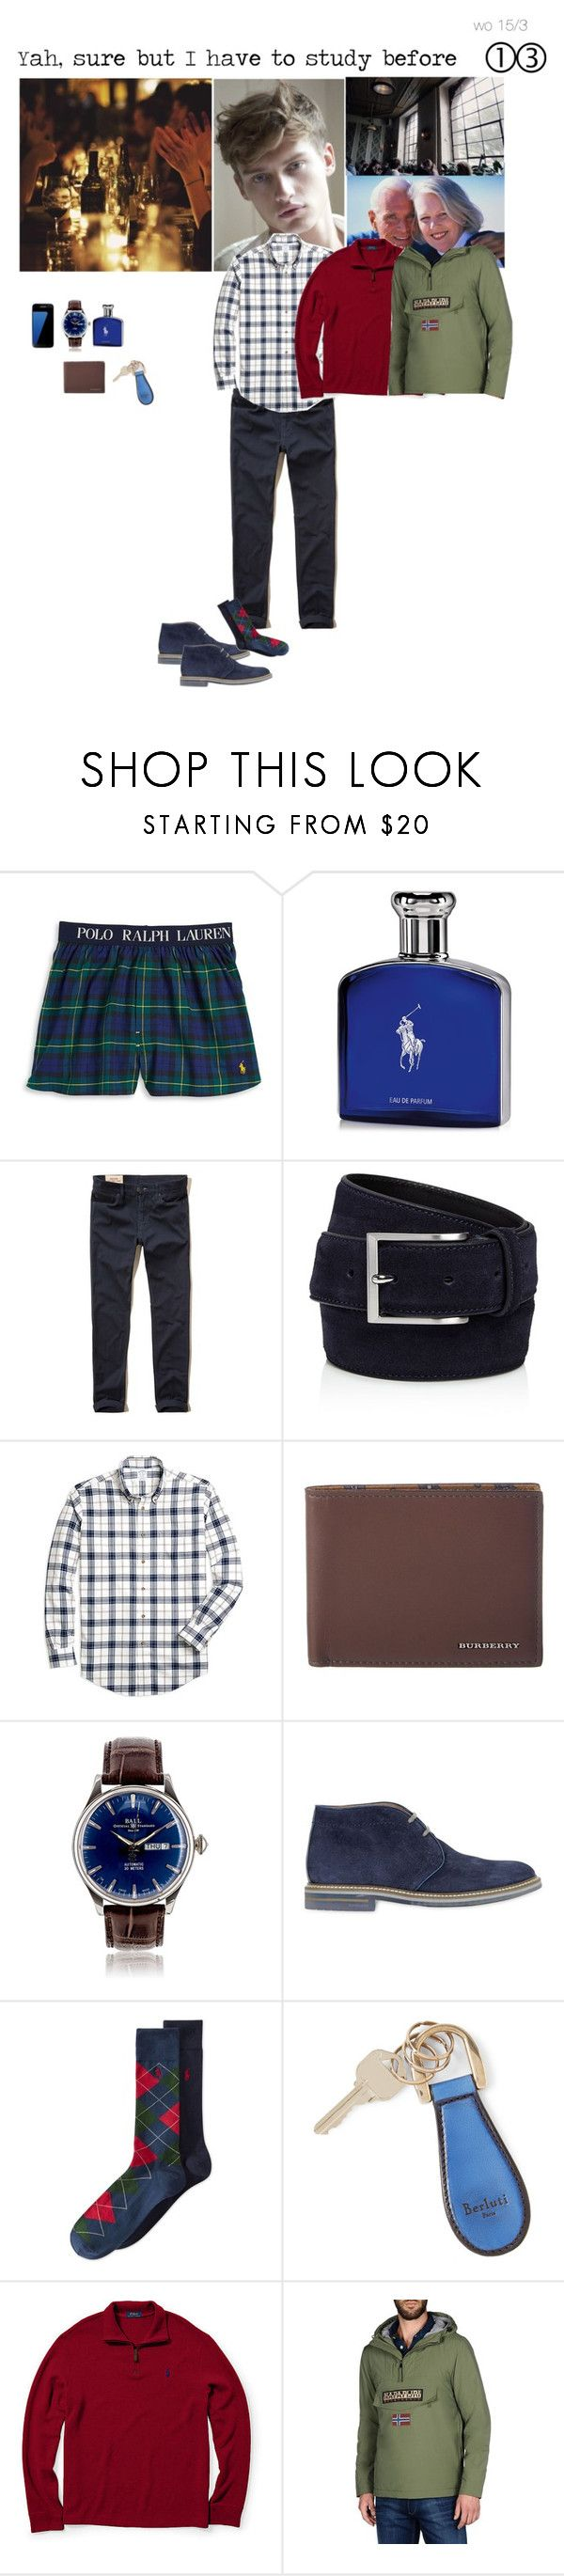 """""""Yah, sure but I have to study before"""" by adelaidesmitha ❤ liked on Polyvore featuring Polo Ralph Lauren, Ralph Lauren, Hollister Co., To Boot New York, Brooks Brothers, Burberry, Brimarts, Berluti, Samsung and Napapijri"""